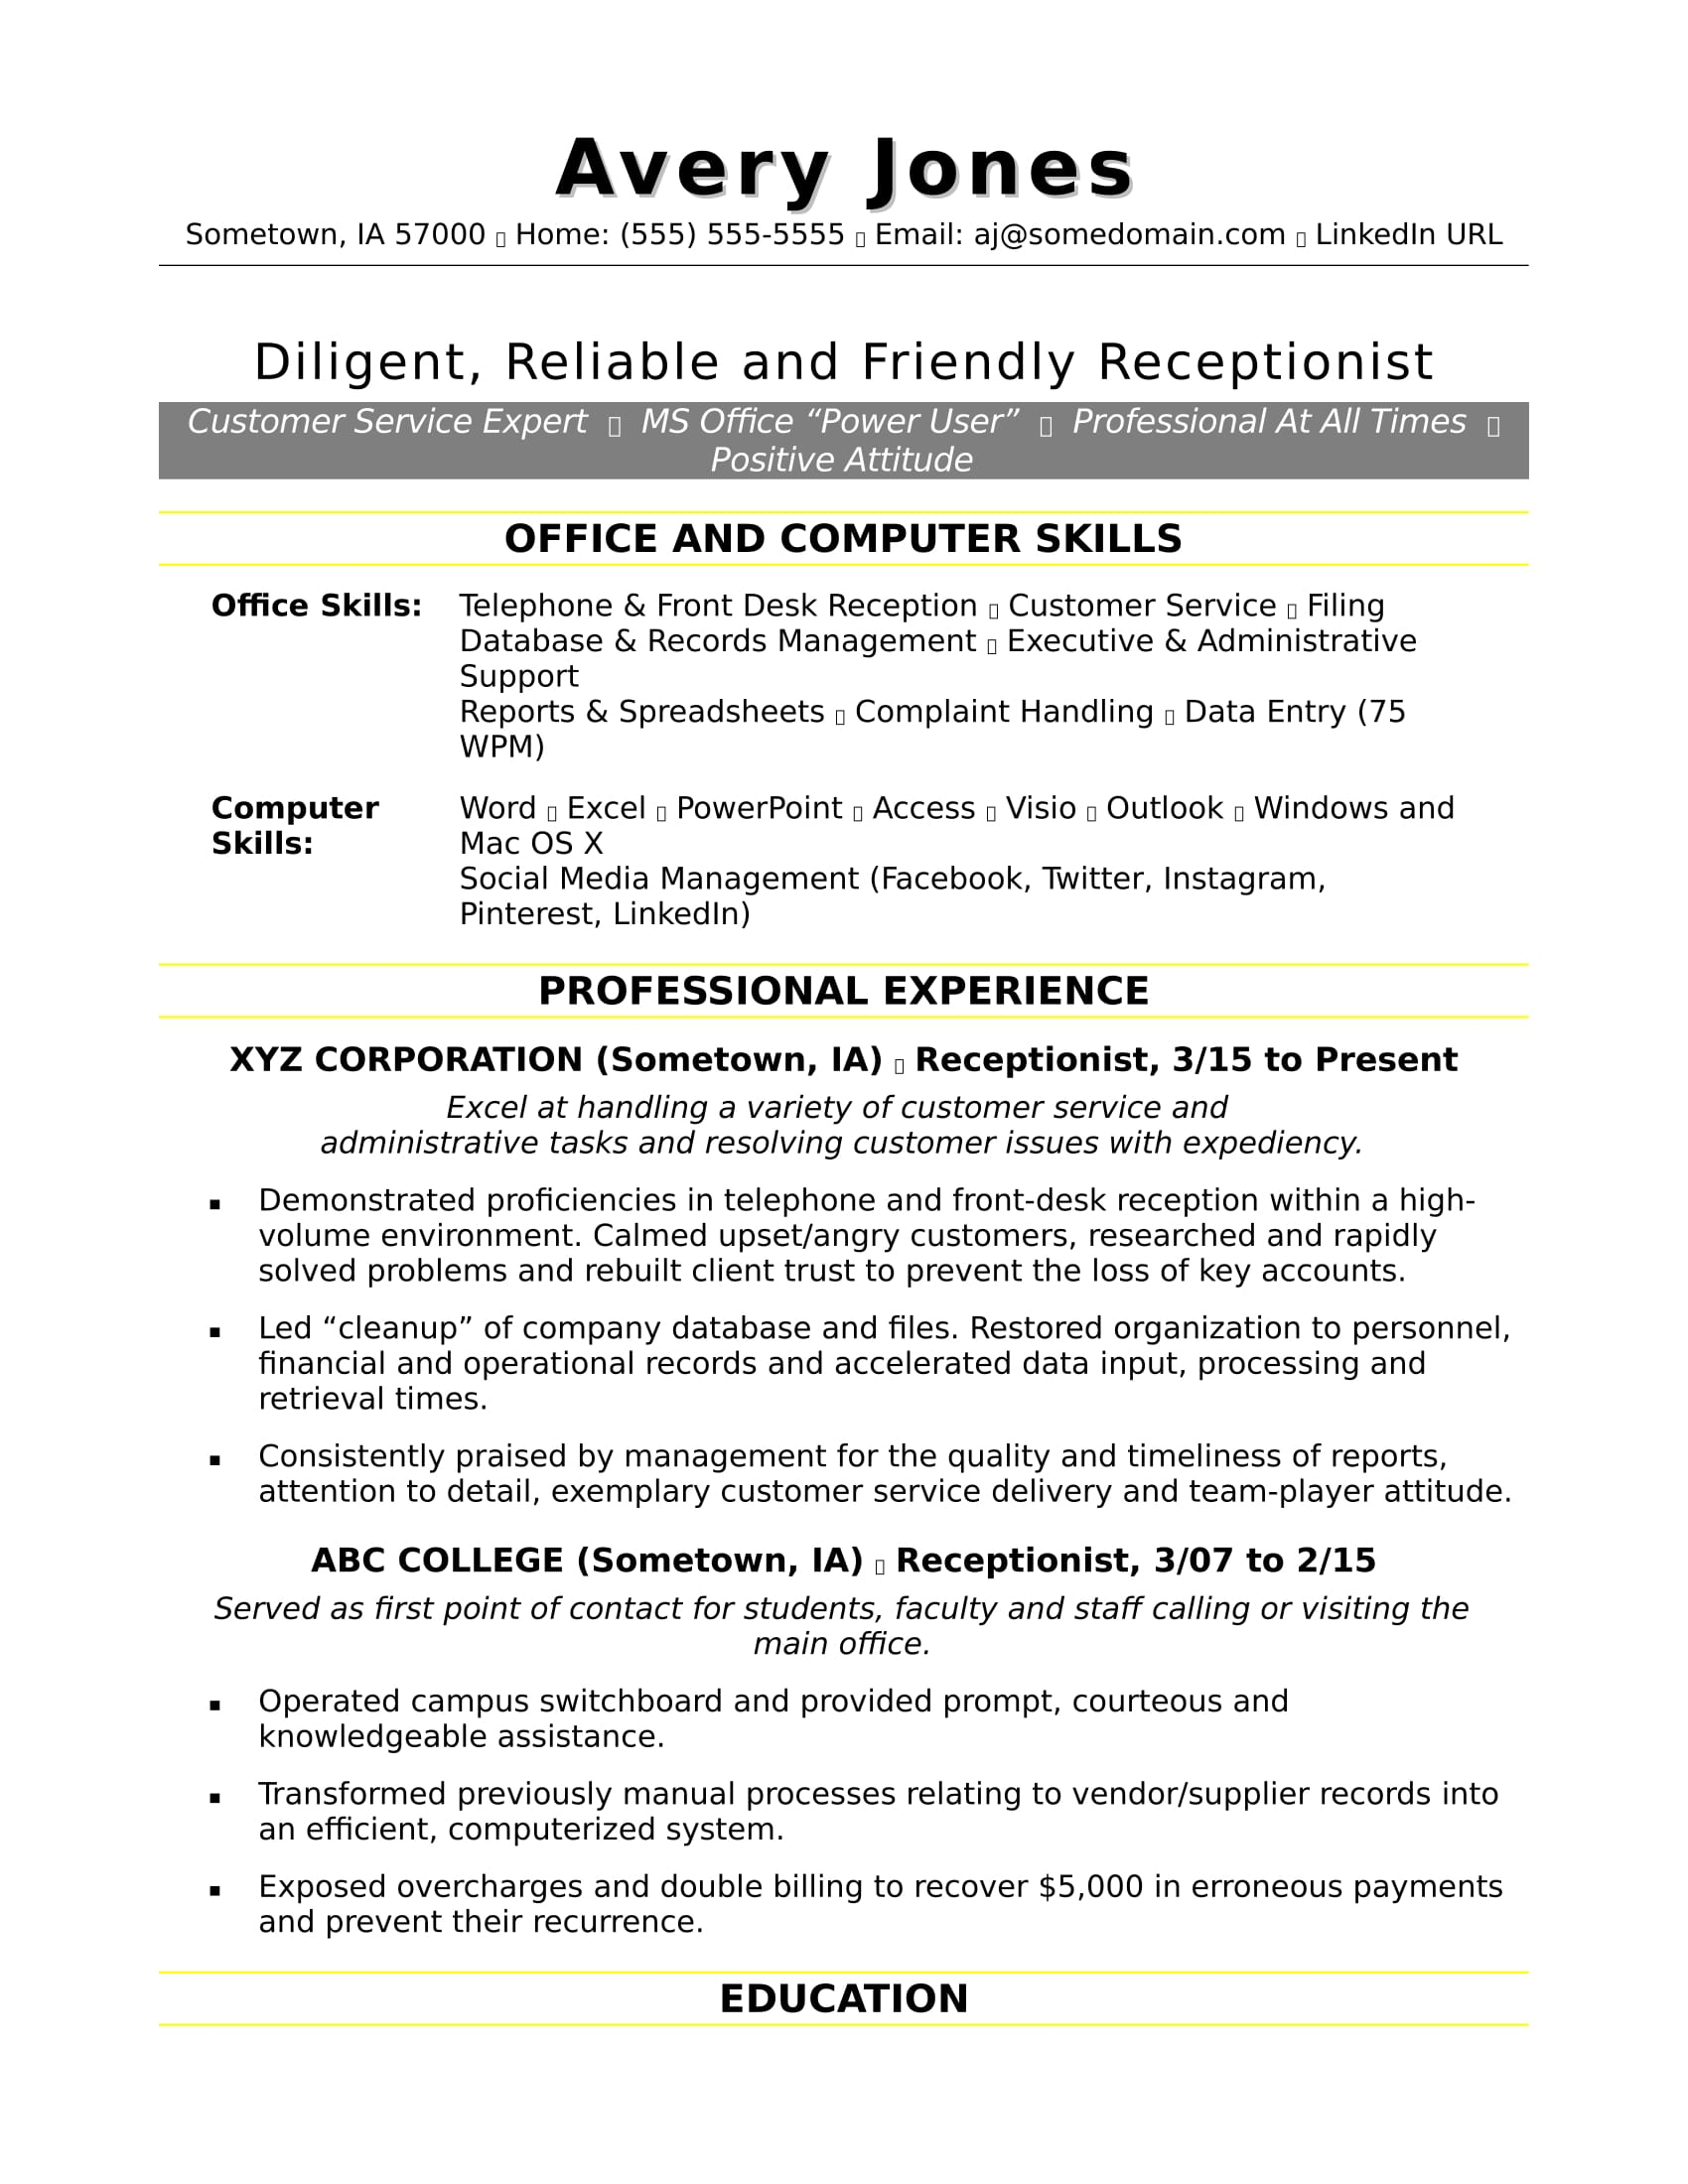 sample resume for a receptionist - Resume Sample Skills Computer